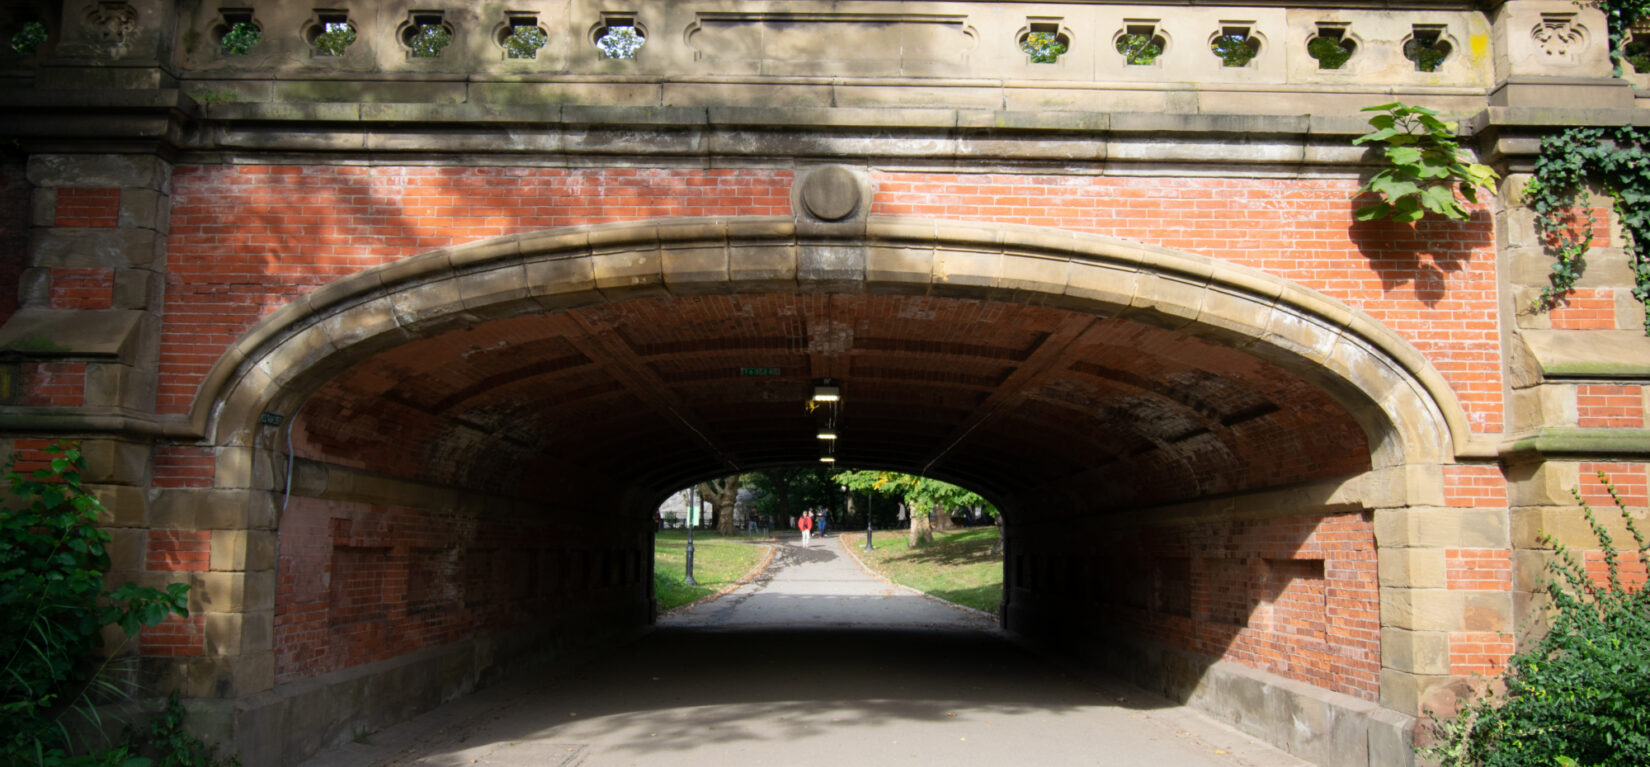 A view looking through the red-bricked Driprck Arch